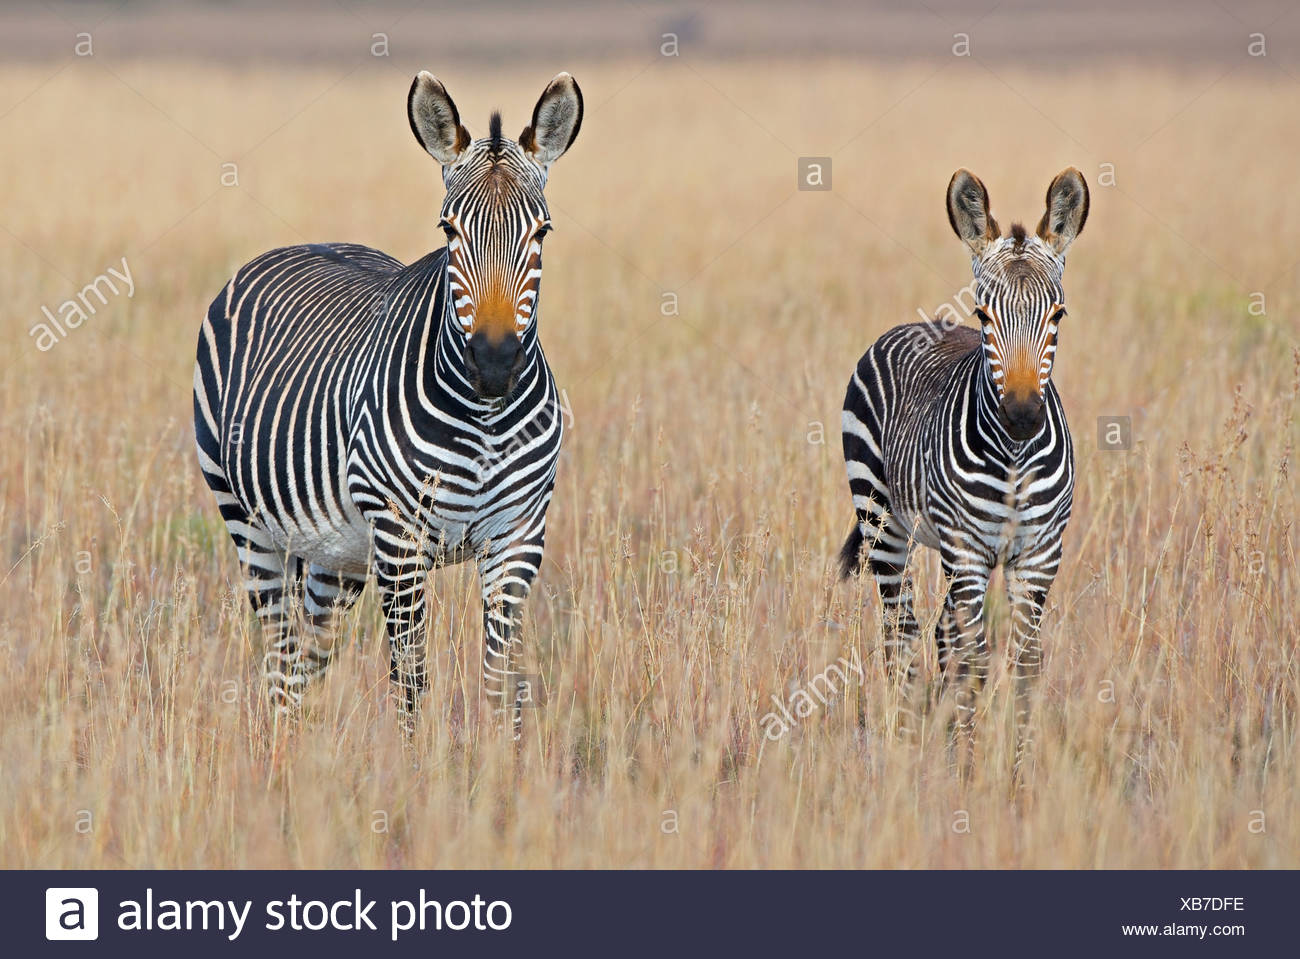 Plains zebra (Equus quagga) with foal in grasslands, Mountain Zebra National Park, Eastern Cape Province, South Africa - Stock Image